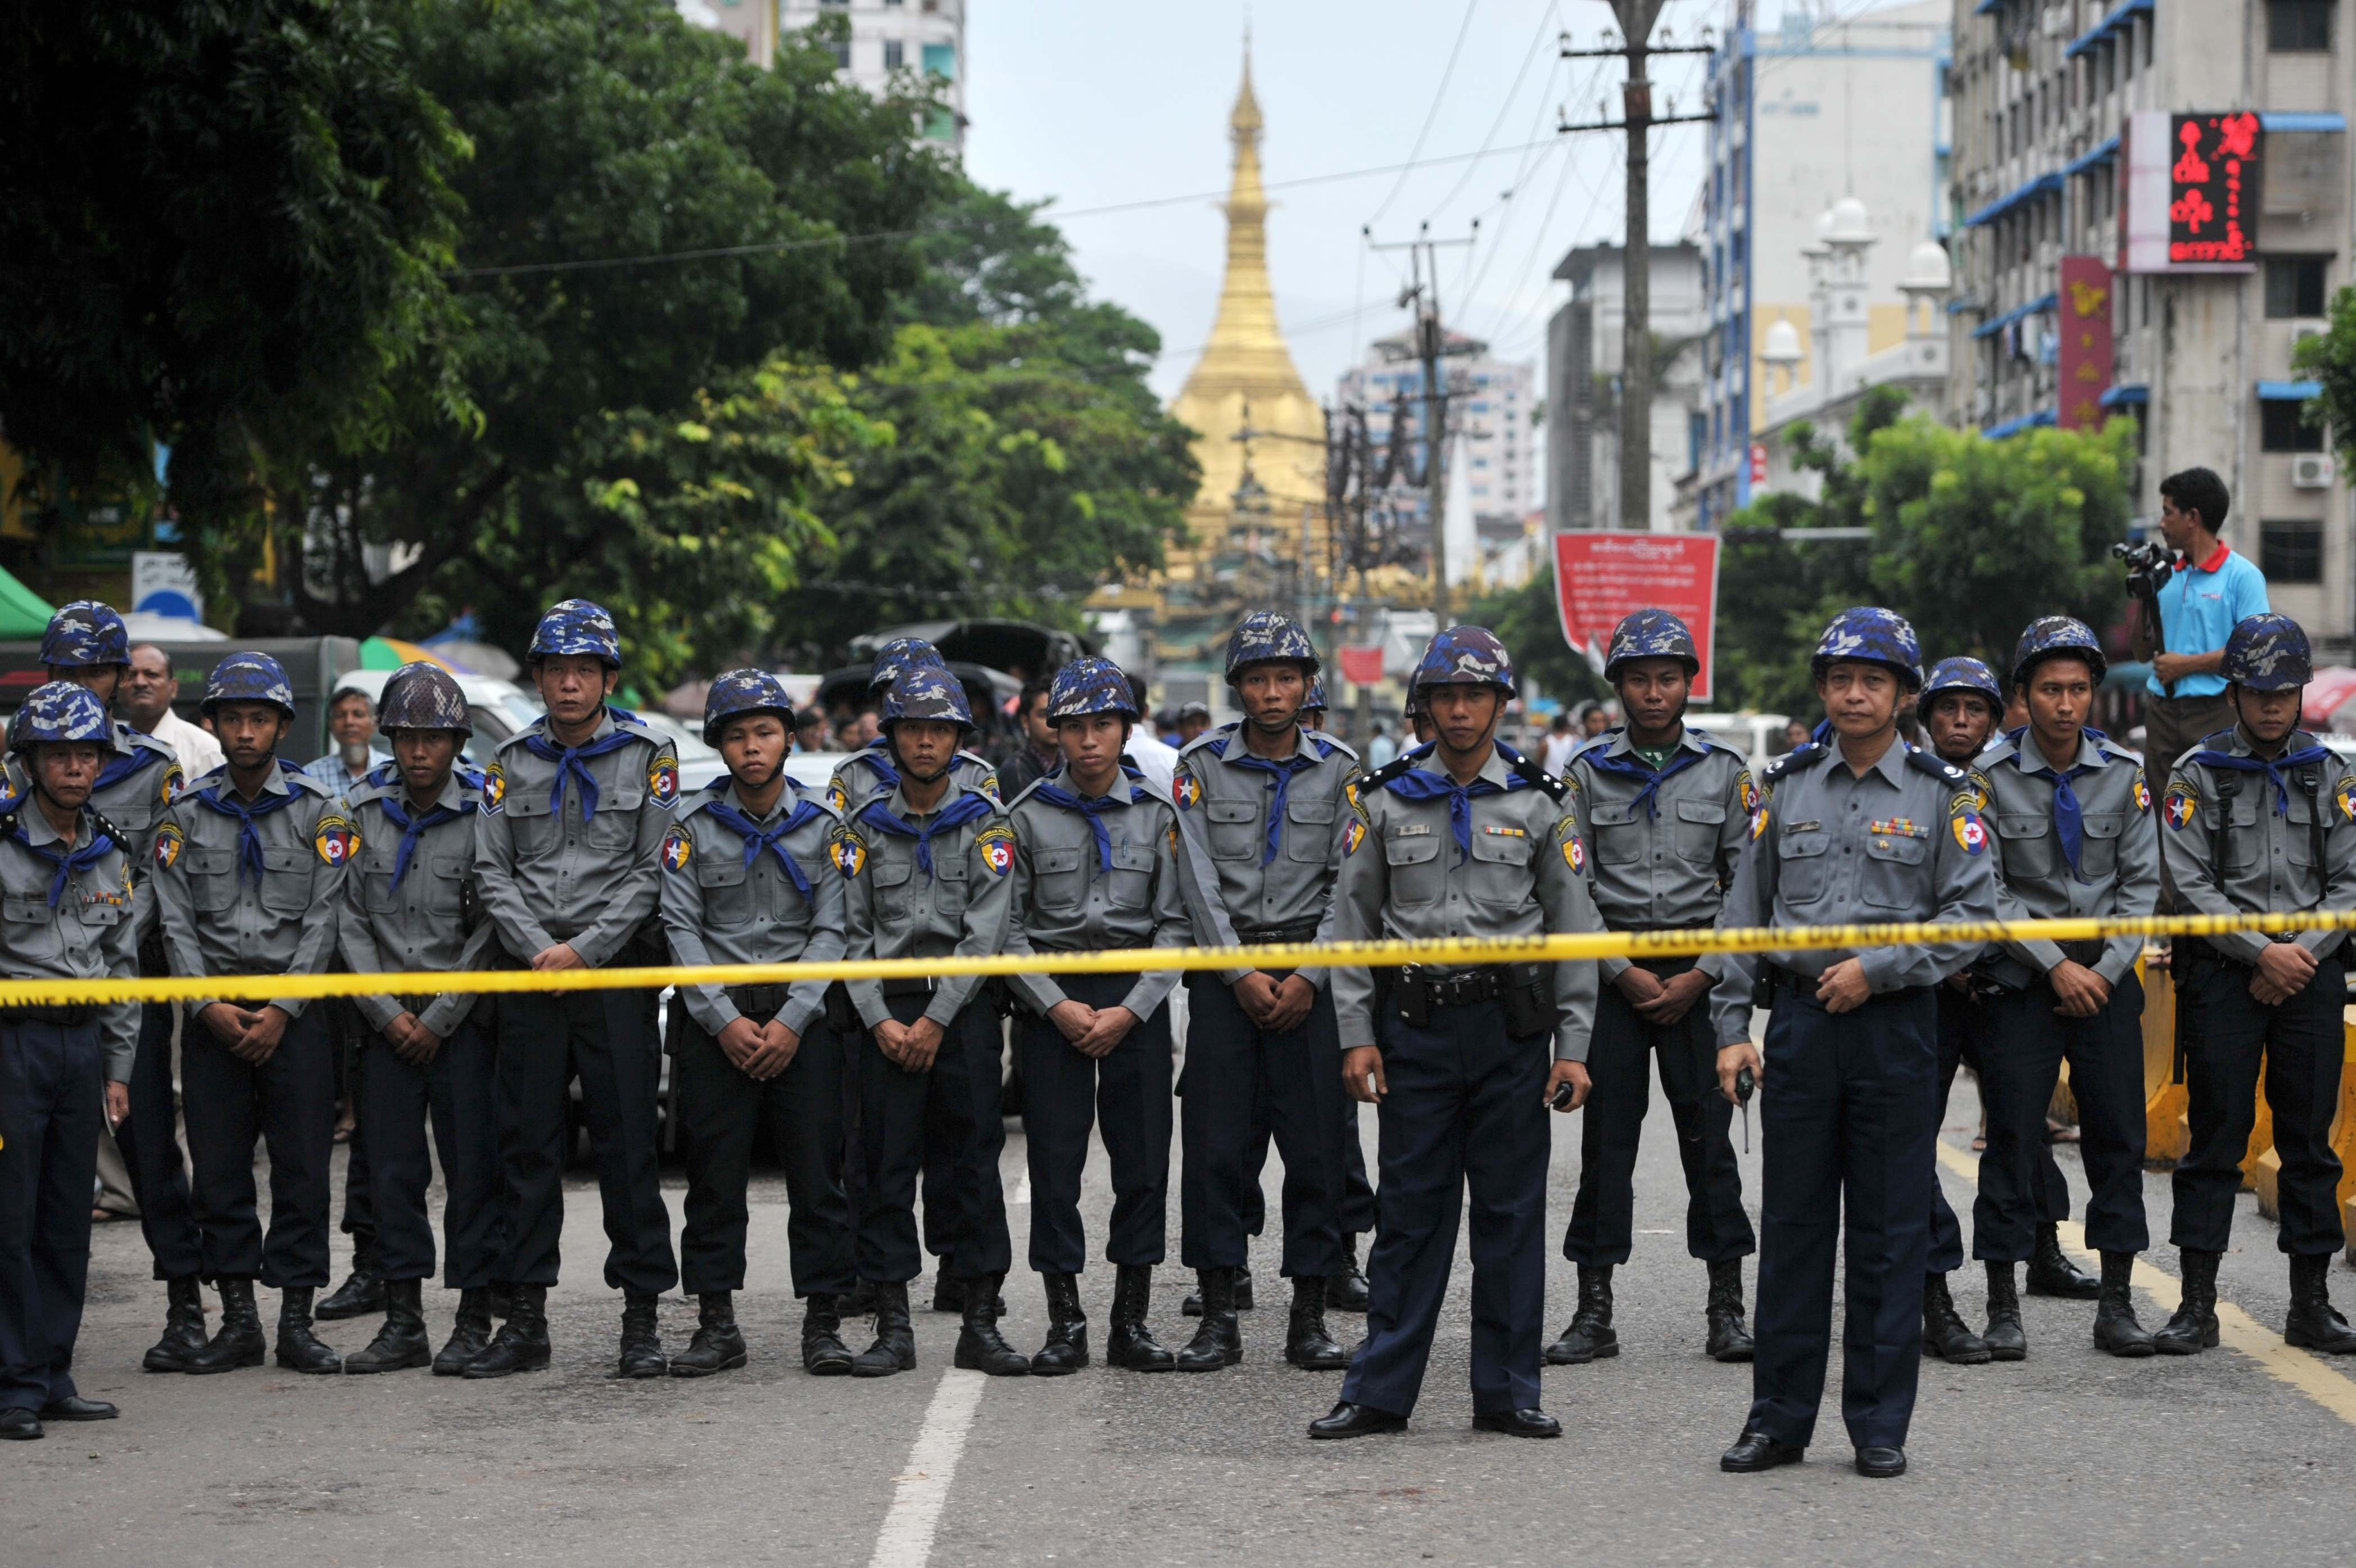 Police hold positions as they face off against student protesters during a demonstration against unelected soldiers who make up a quarter of parliamentary seats, in Yangon on June 30, 2015. Angry crowds scuffled with hundreds of police in downtown Yangon June 30 in a protest against the Myanmar army's veto on constitutional change, blamed for the defeat last week of a charter reform bill backed by Aung San Suu Kyi. (YE AUNG THU/AFP/Getty Images)